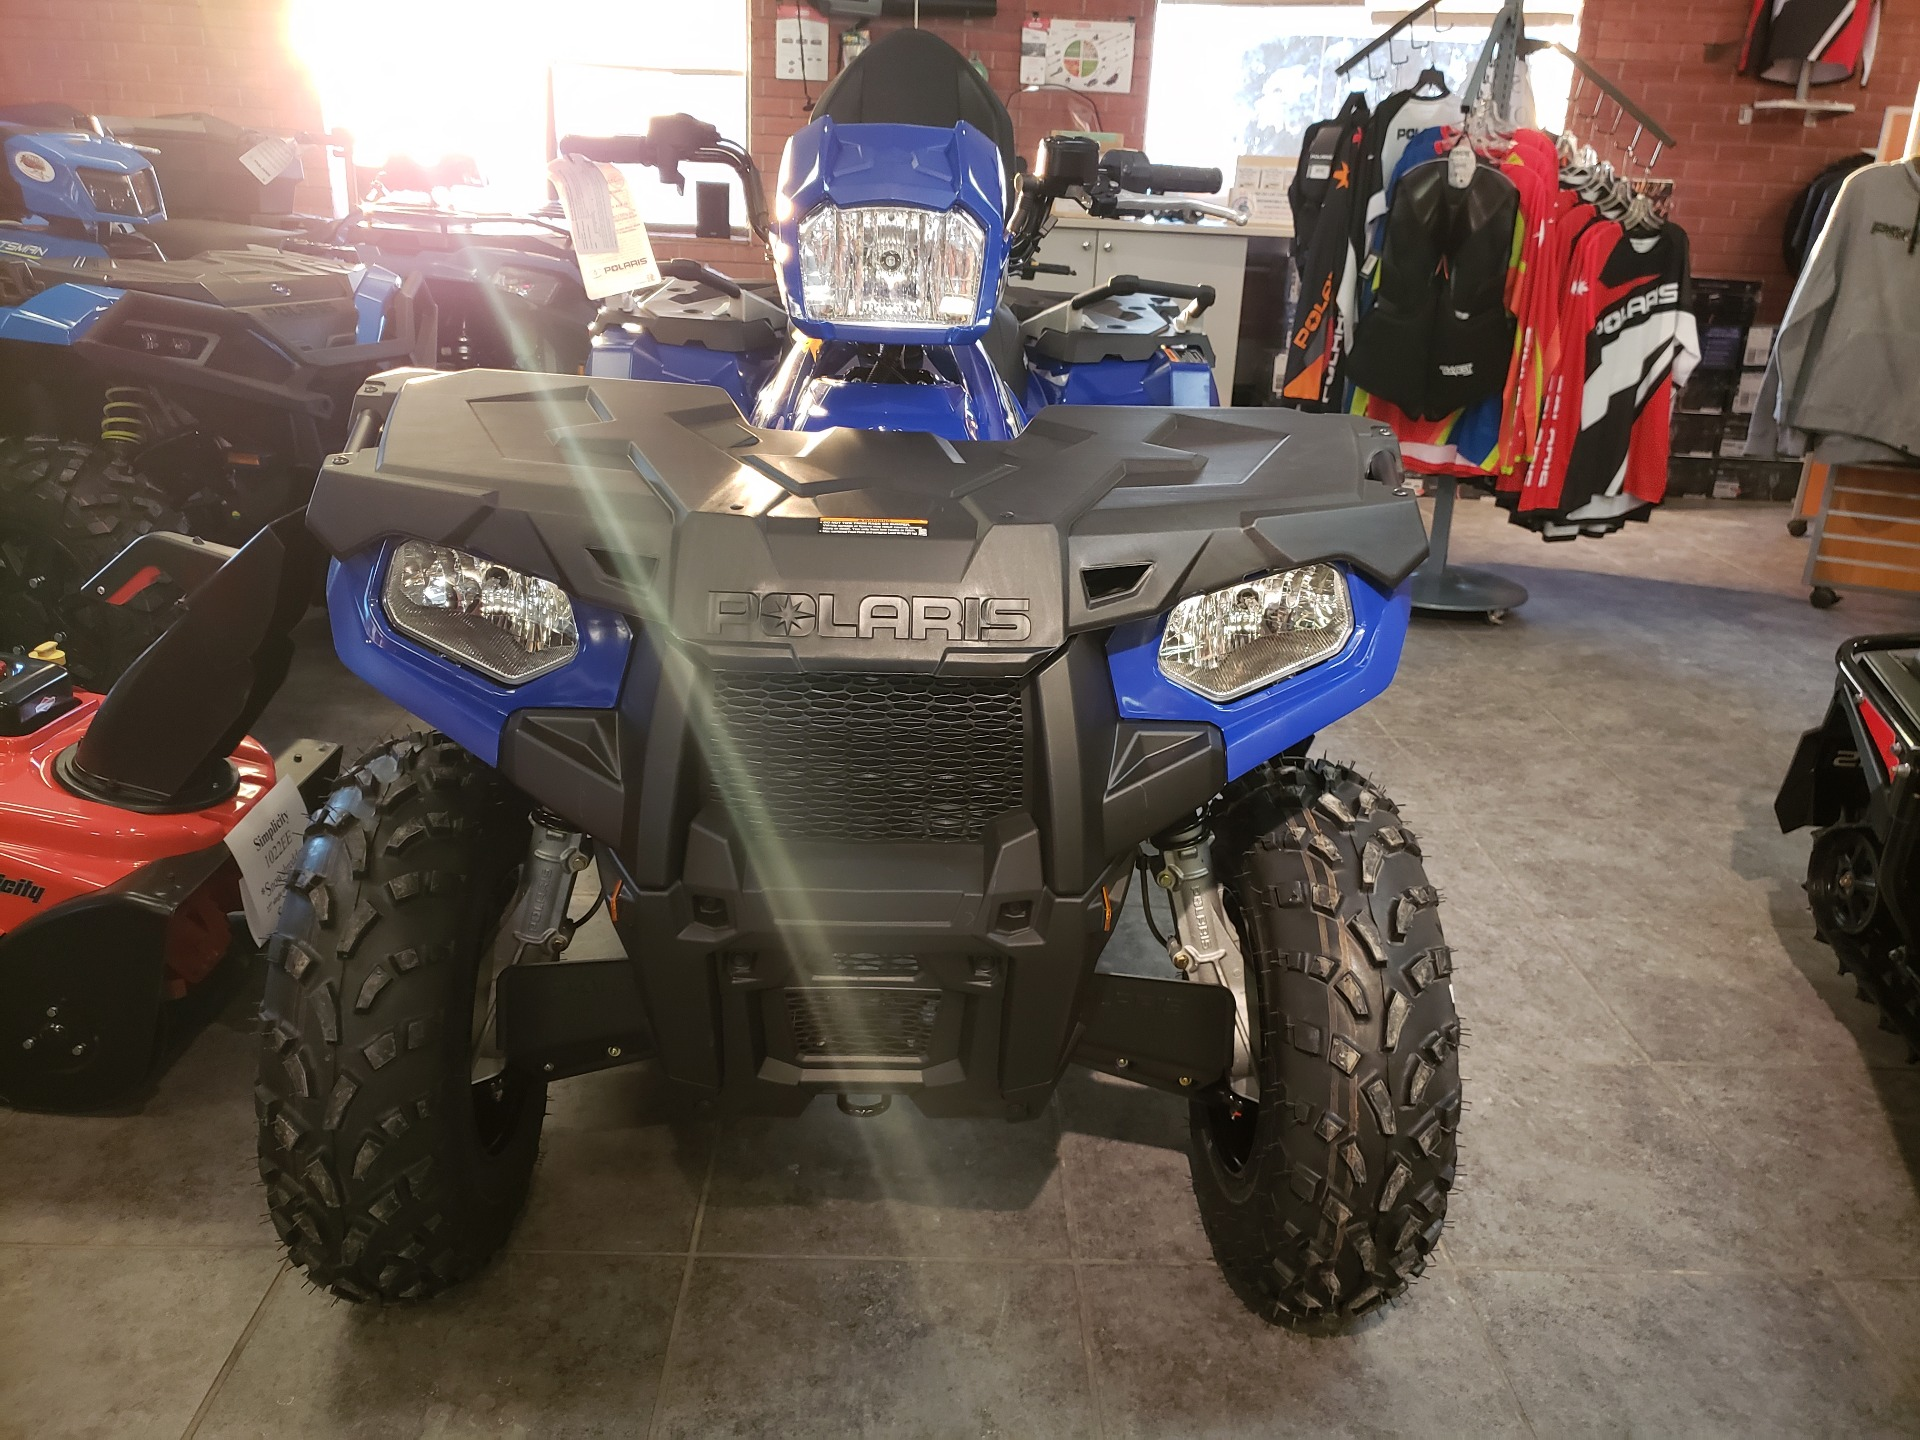 2021 Polaris Sportsman Touring 570 in Fond Du Lac, Wisconsin - Photo 3